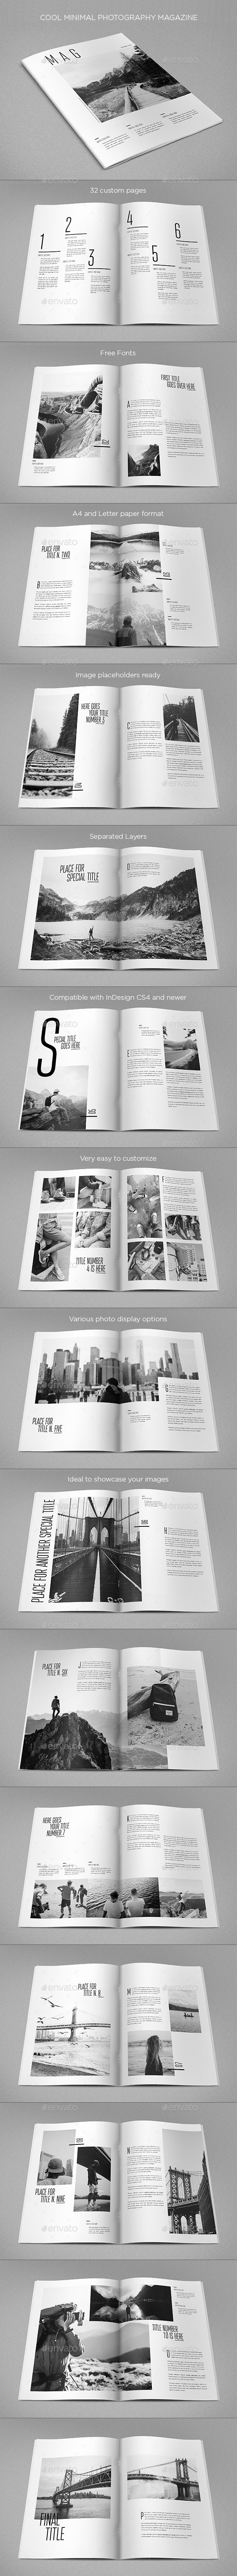 Cool Minimal Photography Magazine — InDesign INDD #professional #creative • Download ➝ https://graphicriver.net/item/cool-minimal-photography-magazine/19579094?ref=pxcr